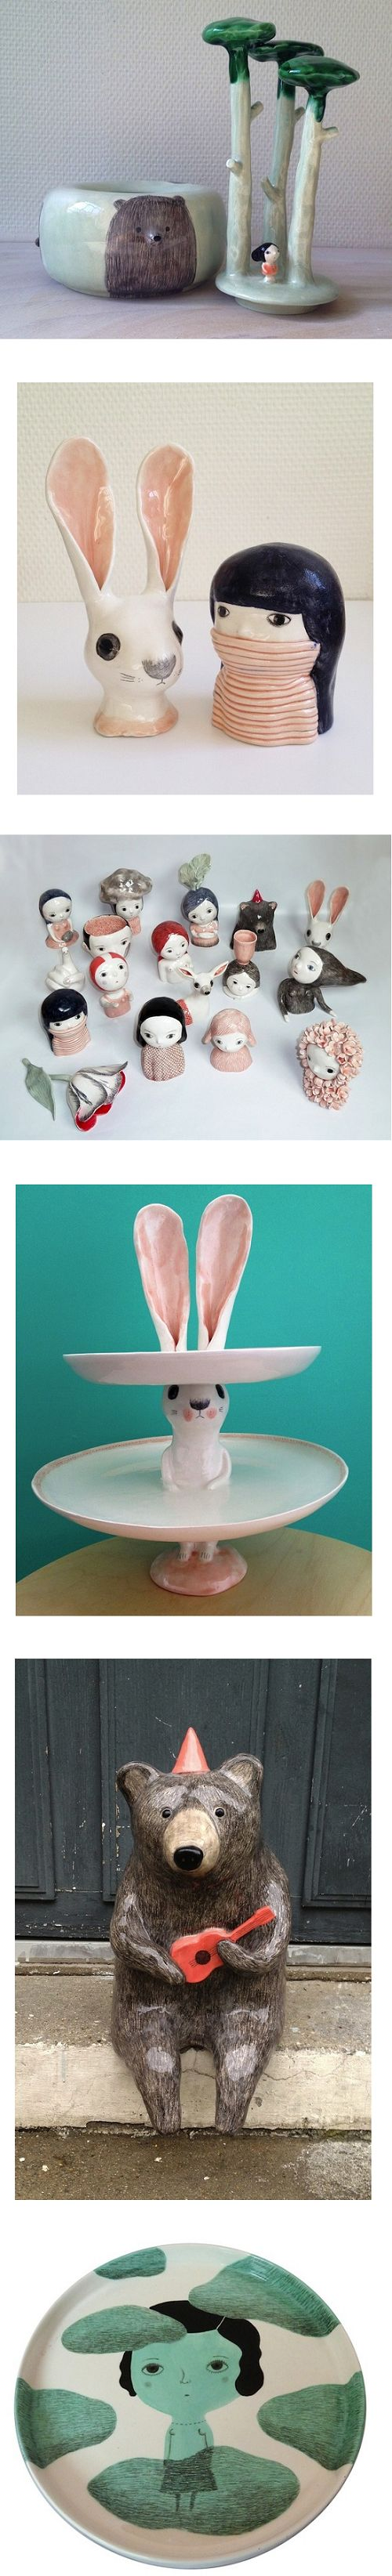 by Natalie Choux via theartcake.com: